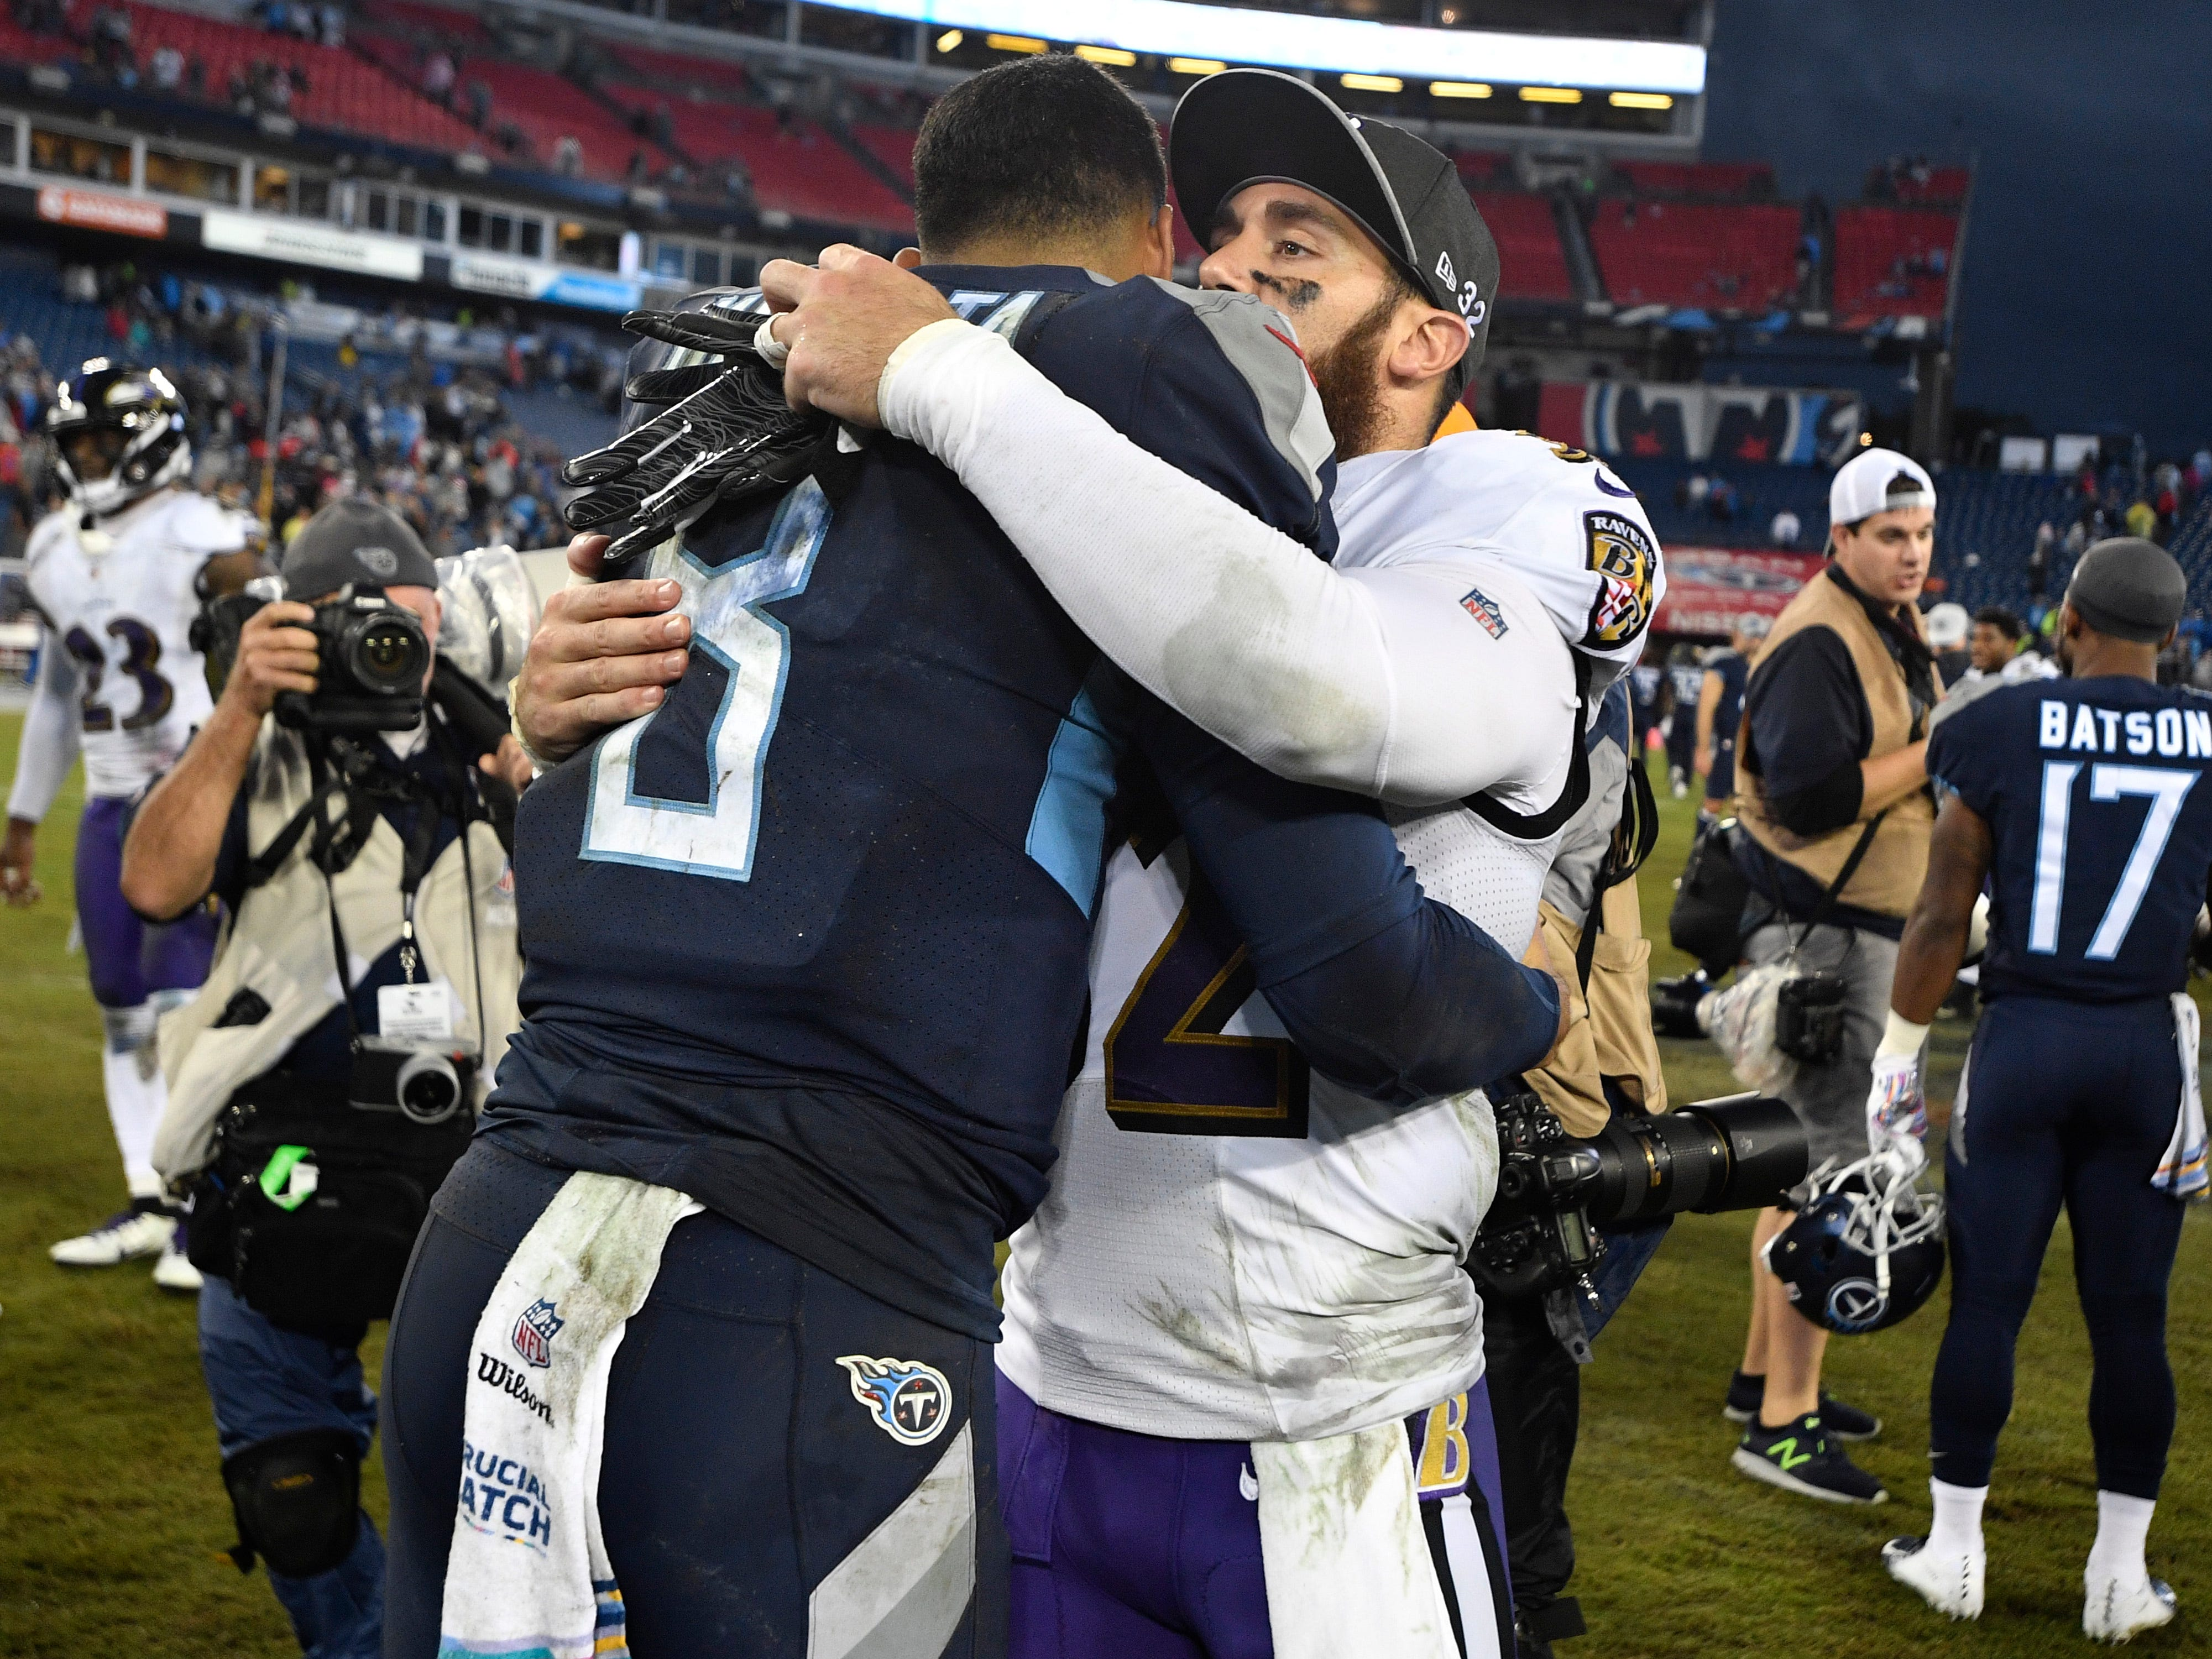 Titans quarterback Marcus Mariota (8) hugs Ravens free safety Eric Weddle (32) after the Titans' 21-0 loss at Nissan Stadium Sunday, Oct. 14, 2018, in Nashville, Tenn.